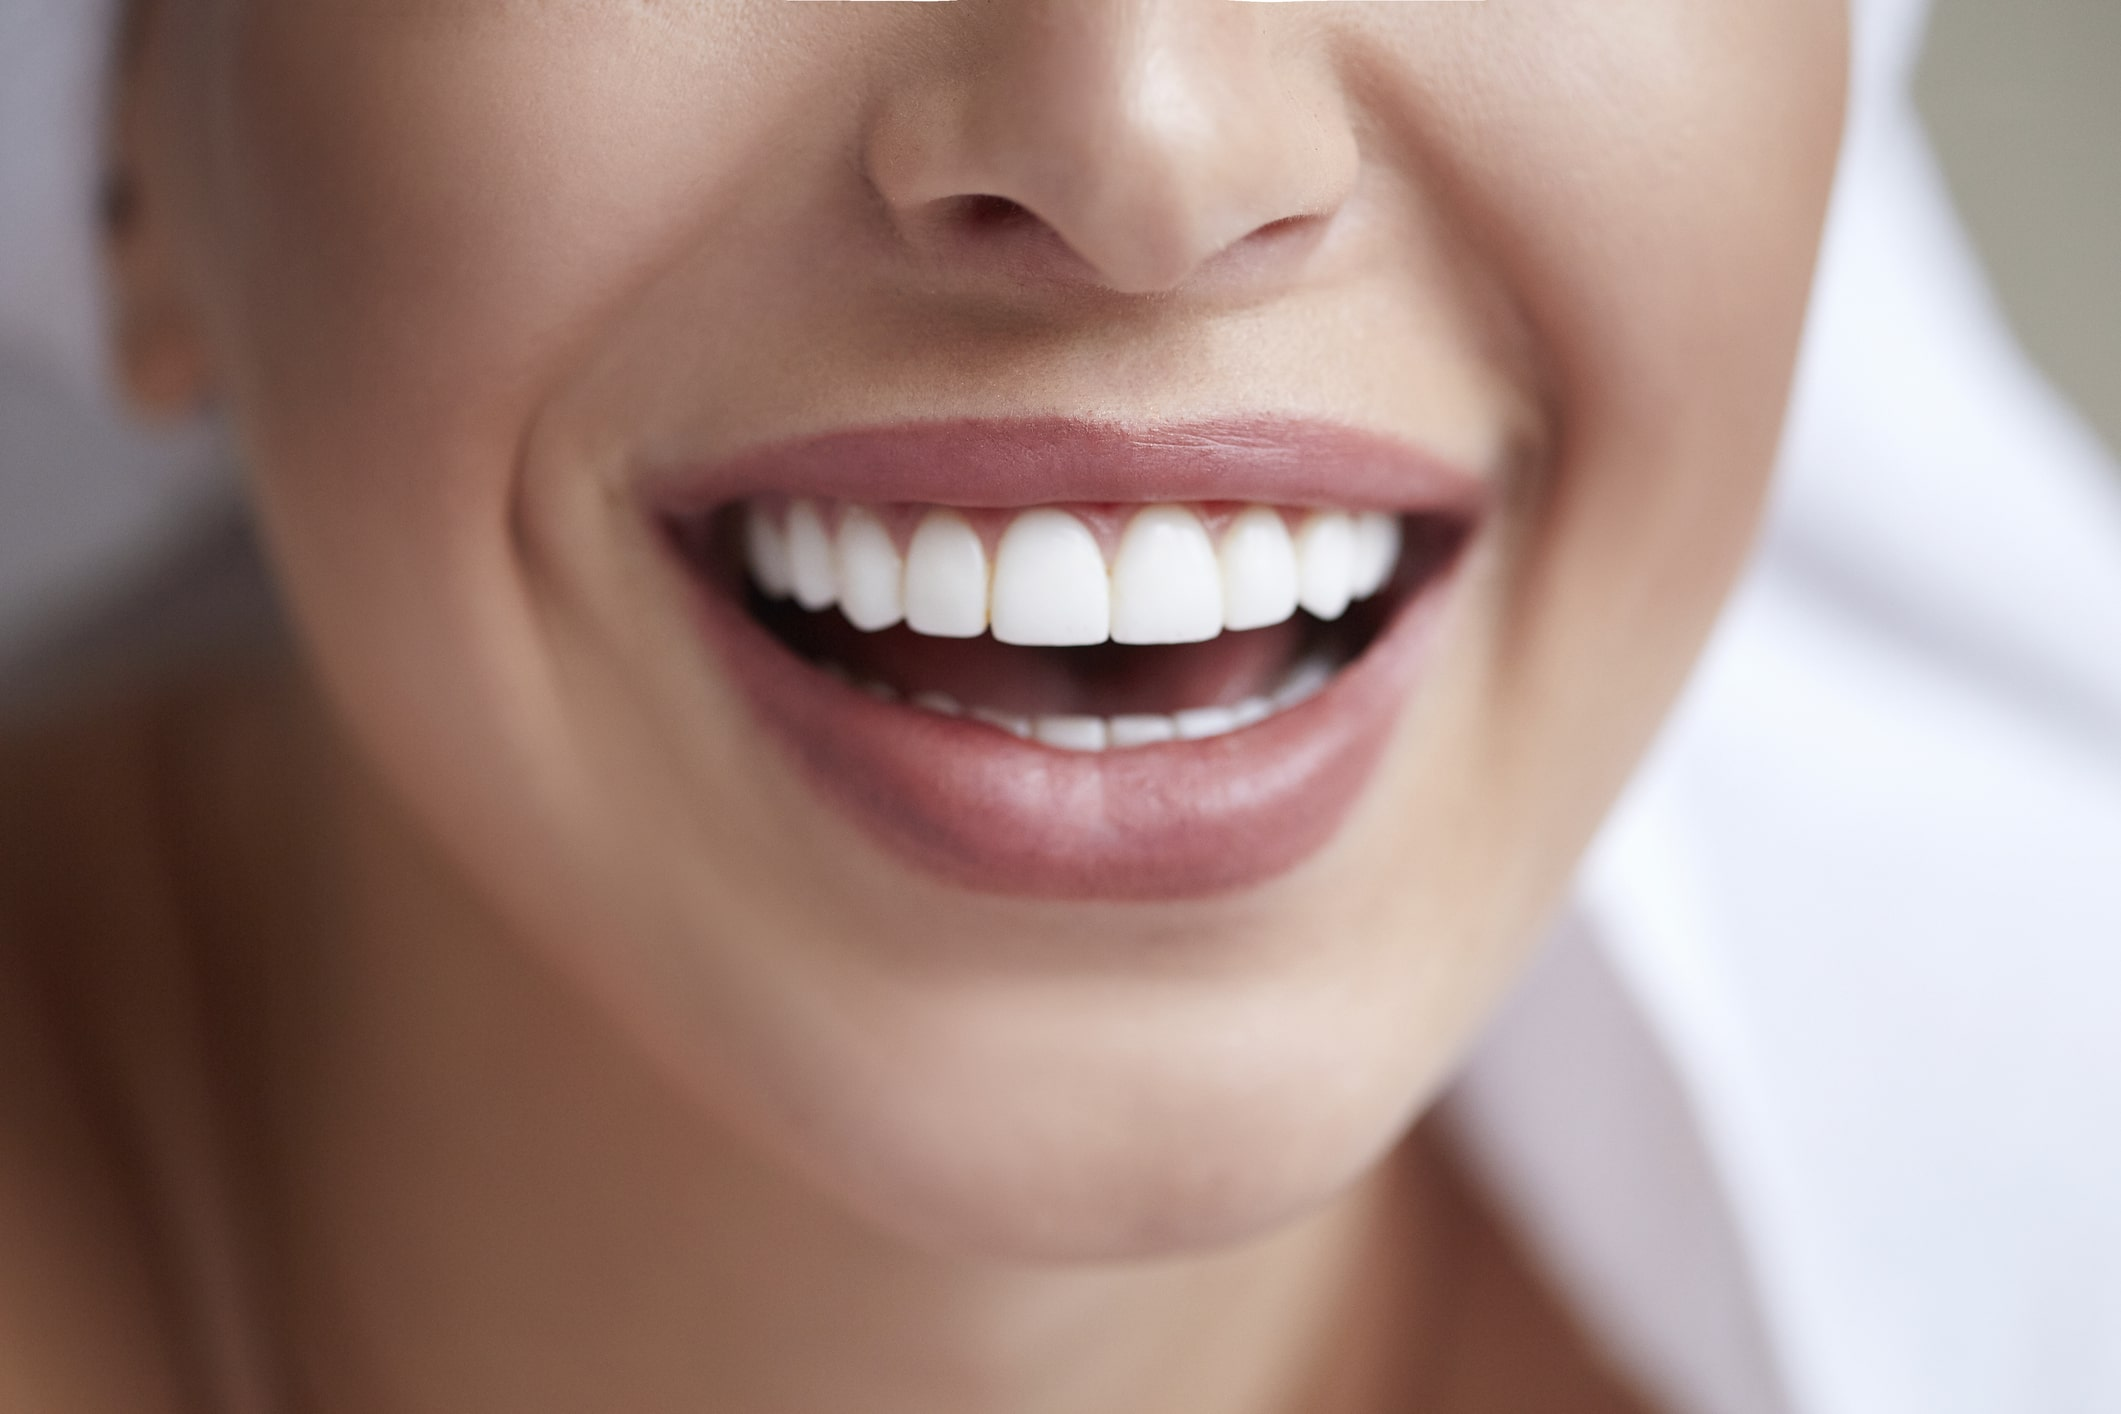 Restore A Youthful Smile: Treatments For Mouth Changes As We Age